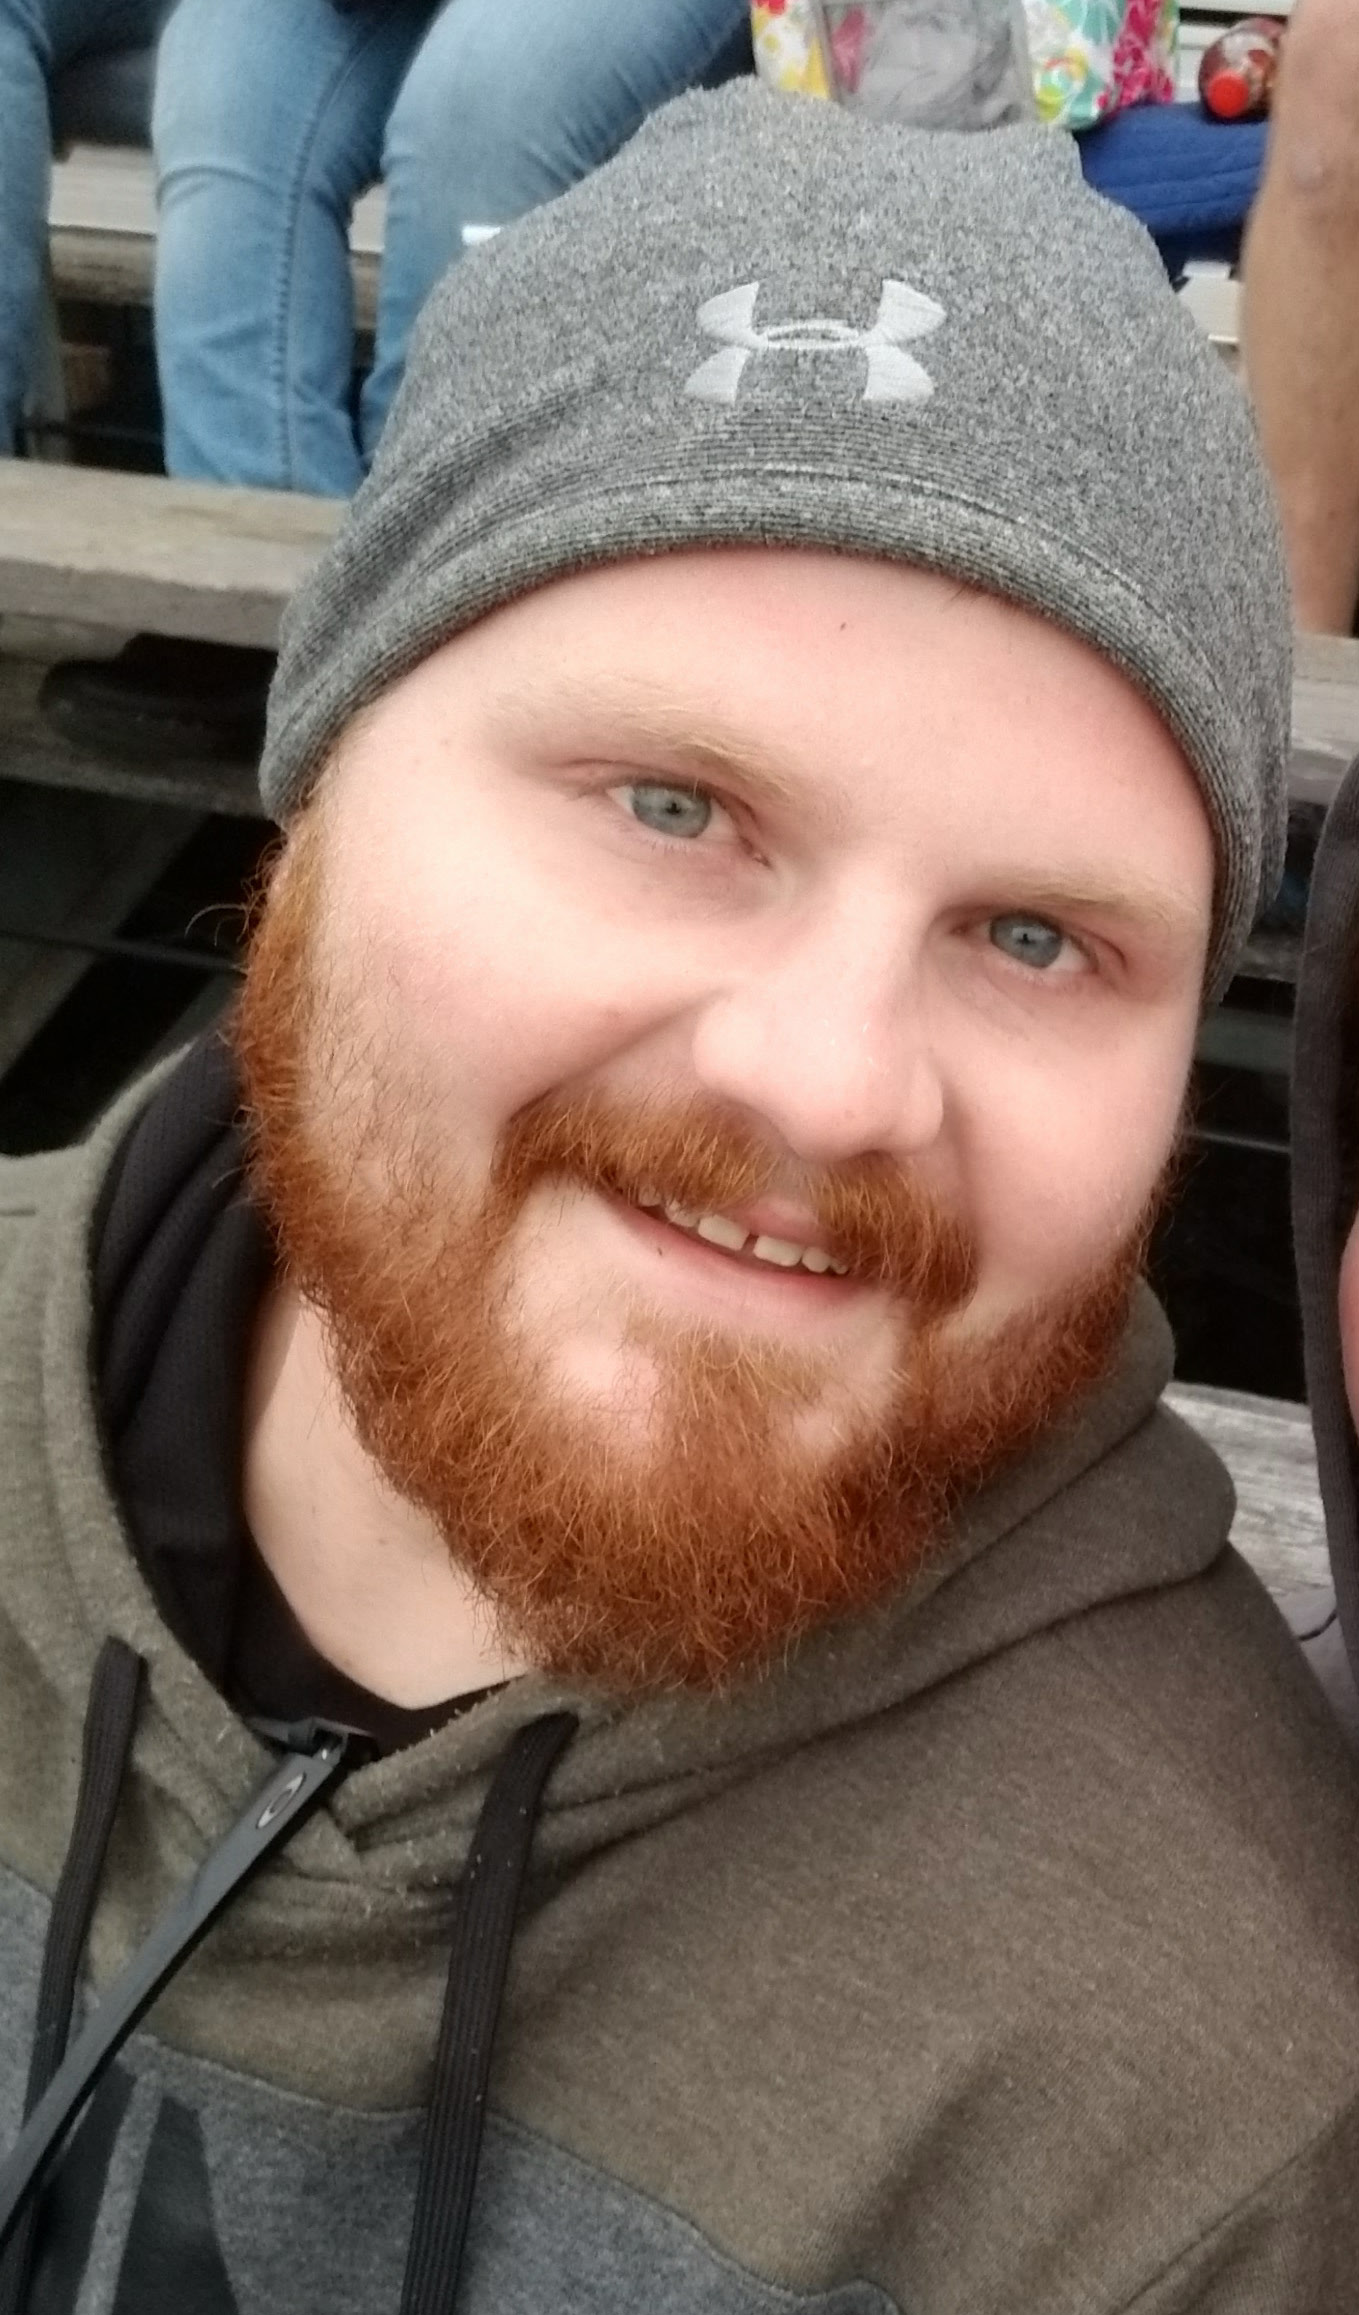 Kaleb Lee Opel, age 31, of St. Anthony